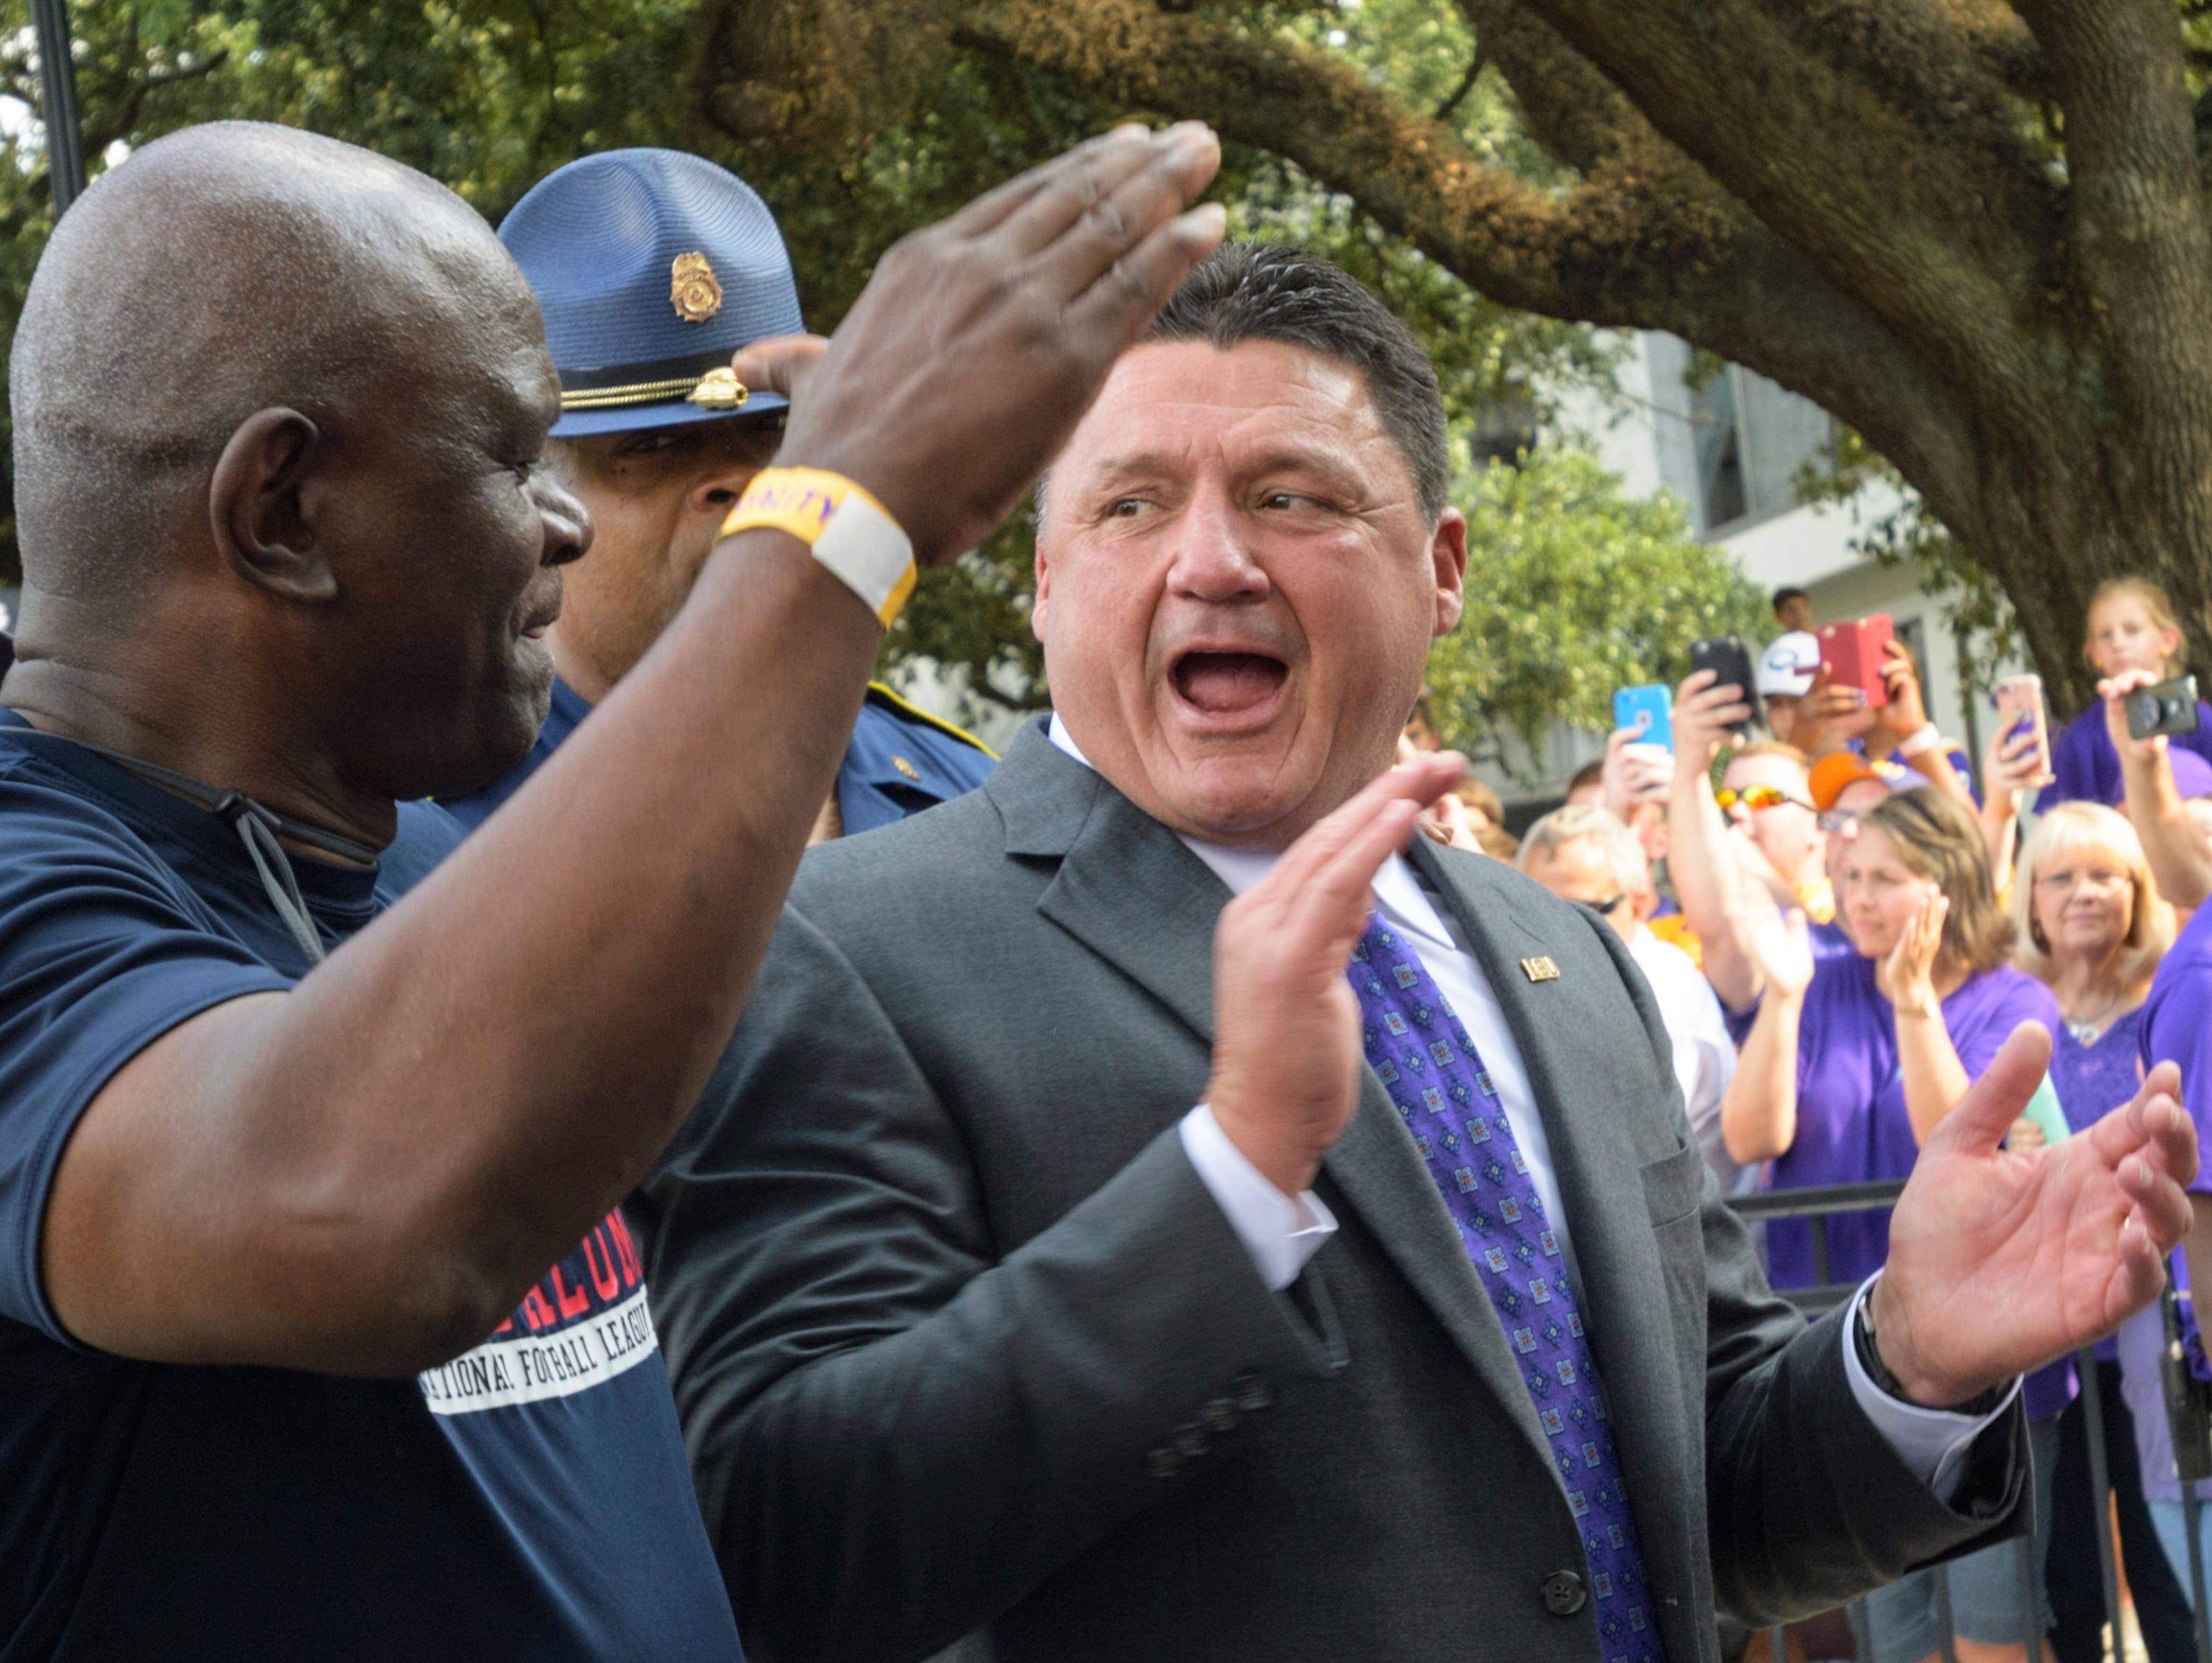 LSU head coach Ed Orgeron, right, greets LSU alumni before an NCAA college football game against Troy in Baton Rouge, La., Wednesday, Sept. 30, 2017.